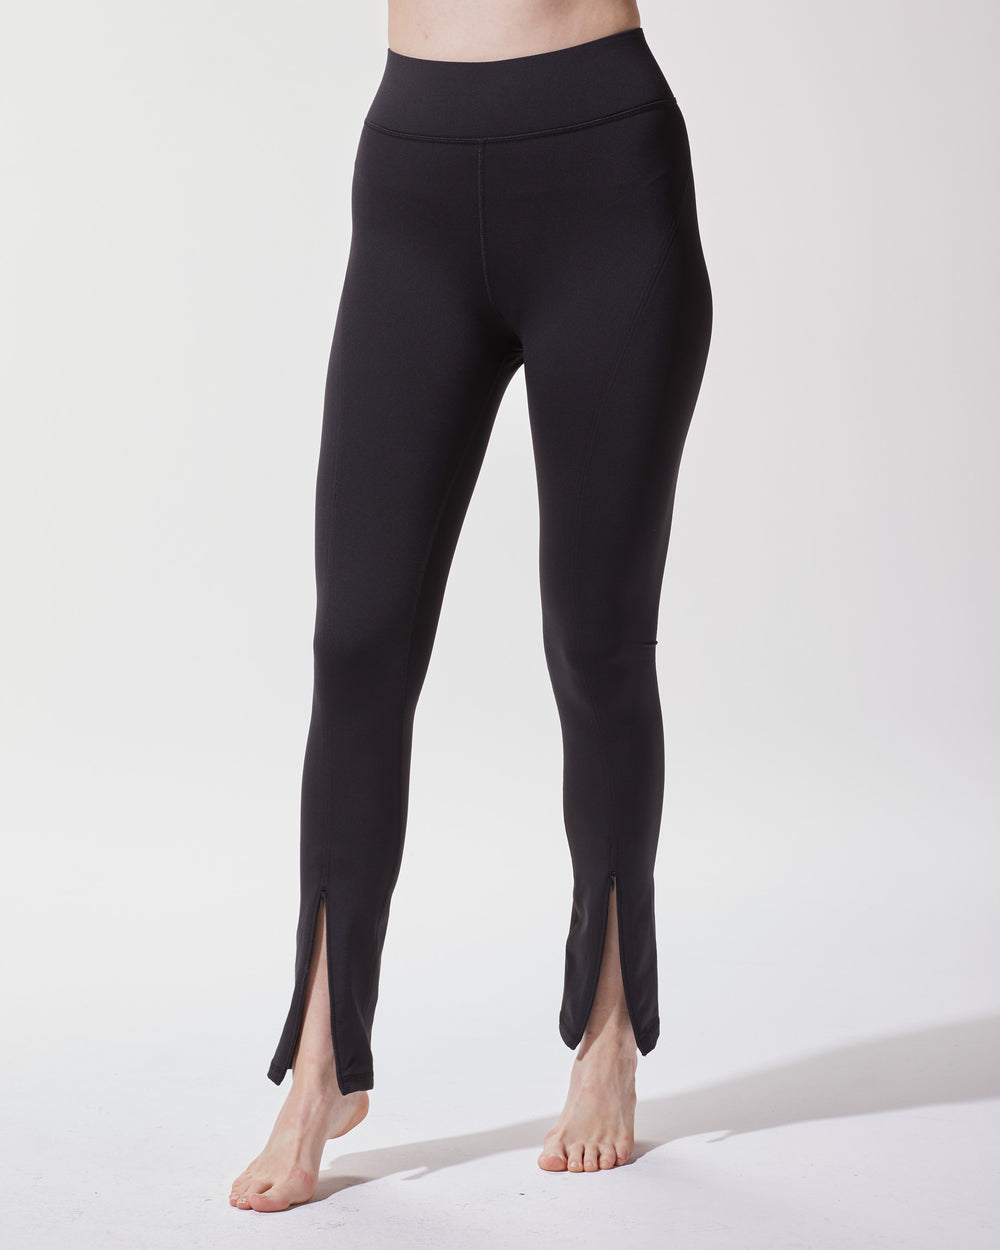 Splice Legging - Black